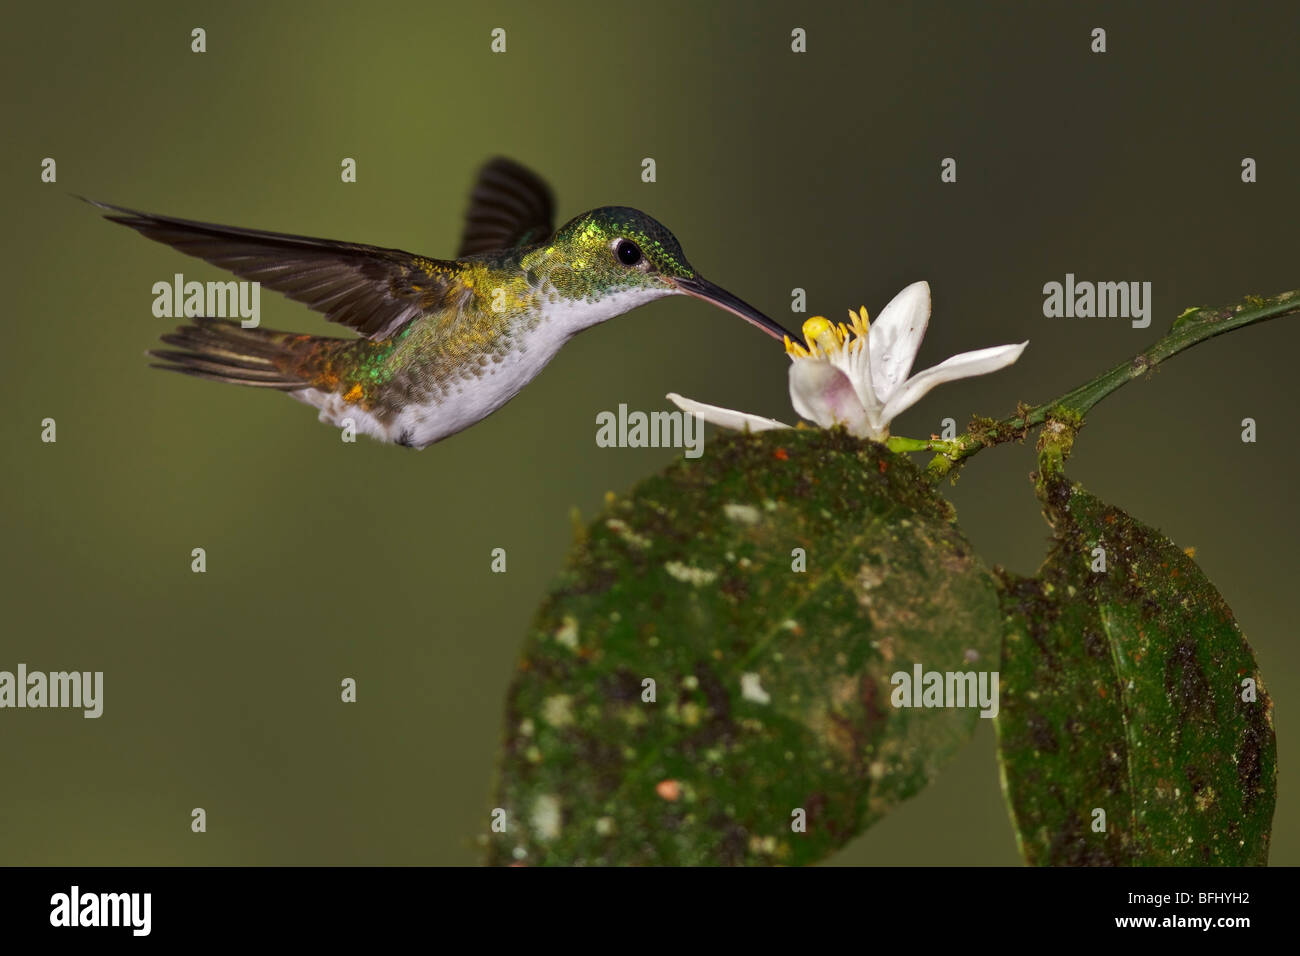 An Andean Emerald hummingbird (Amazilia franciae) feeding at a flower while flying in the Tandayapa Valley of Ecuador. - Stock Image